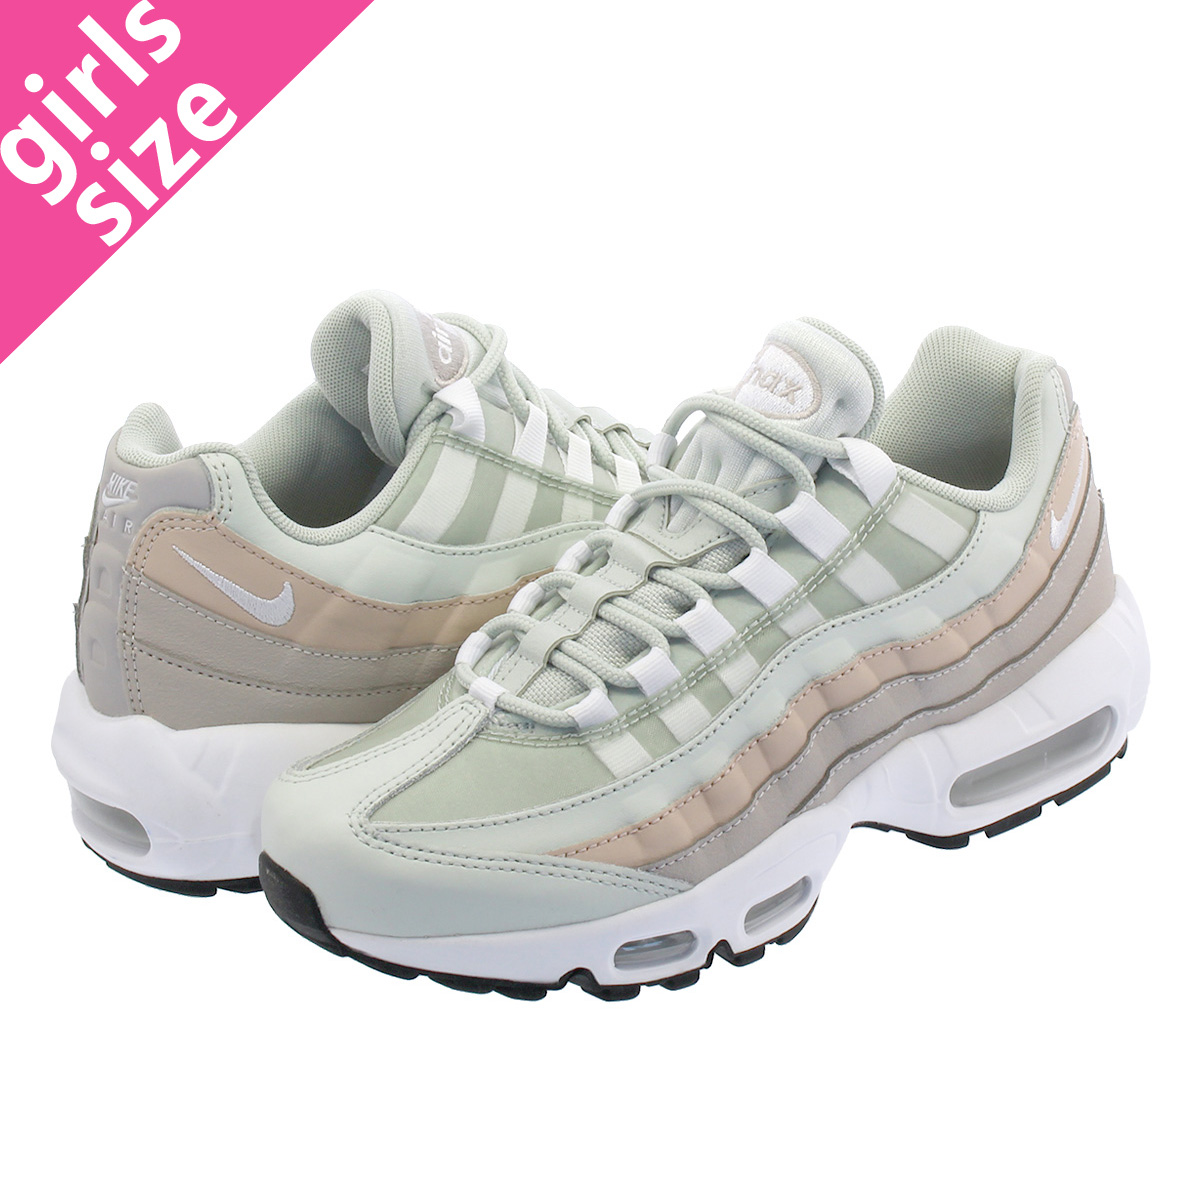 the best attitude 54763 5ef1d NIKE WMNS AIR MAX 95 Nike women Air Max 95 LIGHT SILVER WHITE MOON PARTICLE  307,960-018